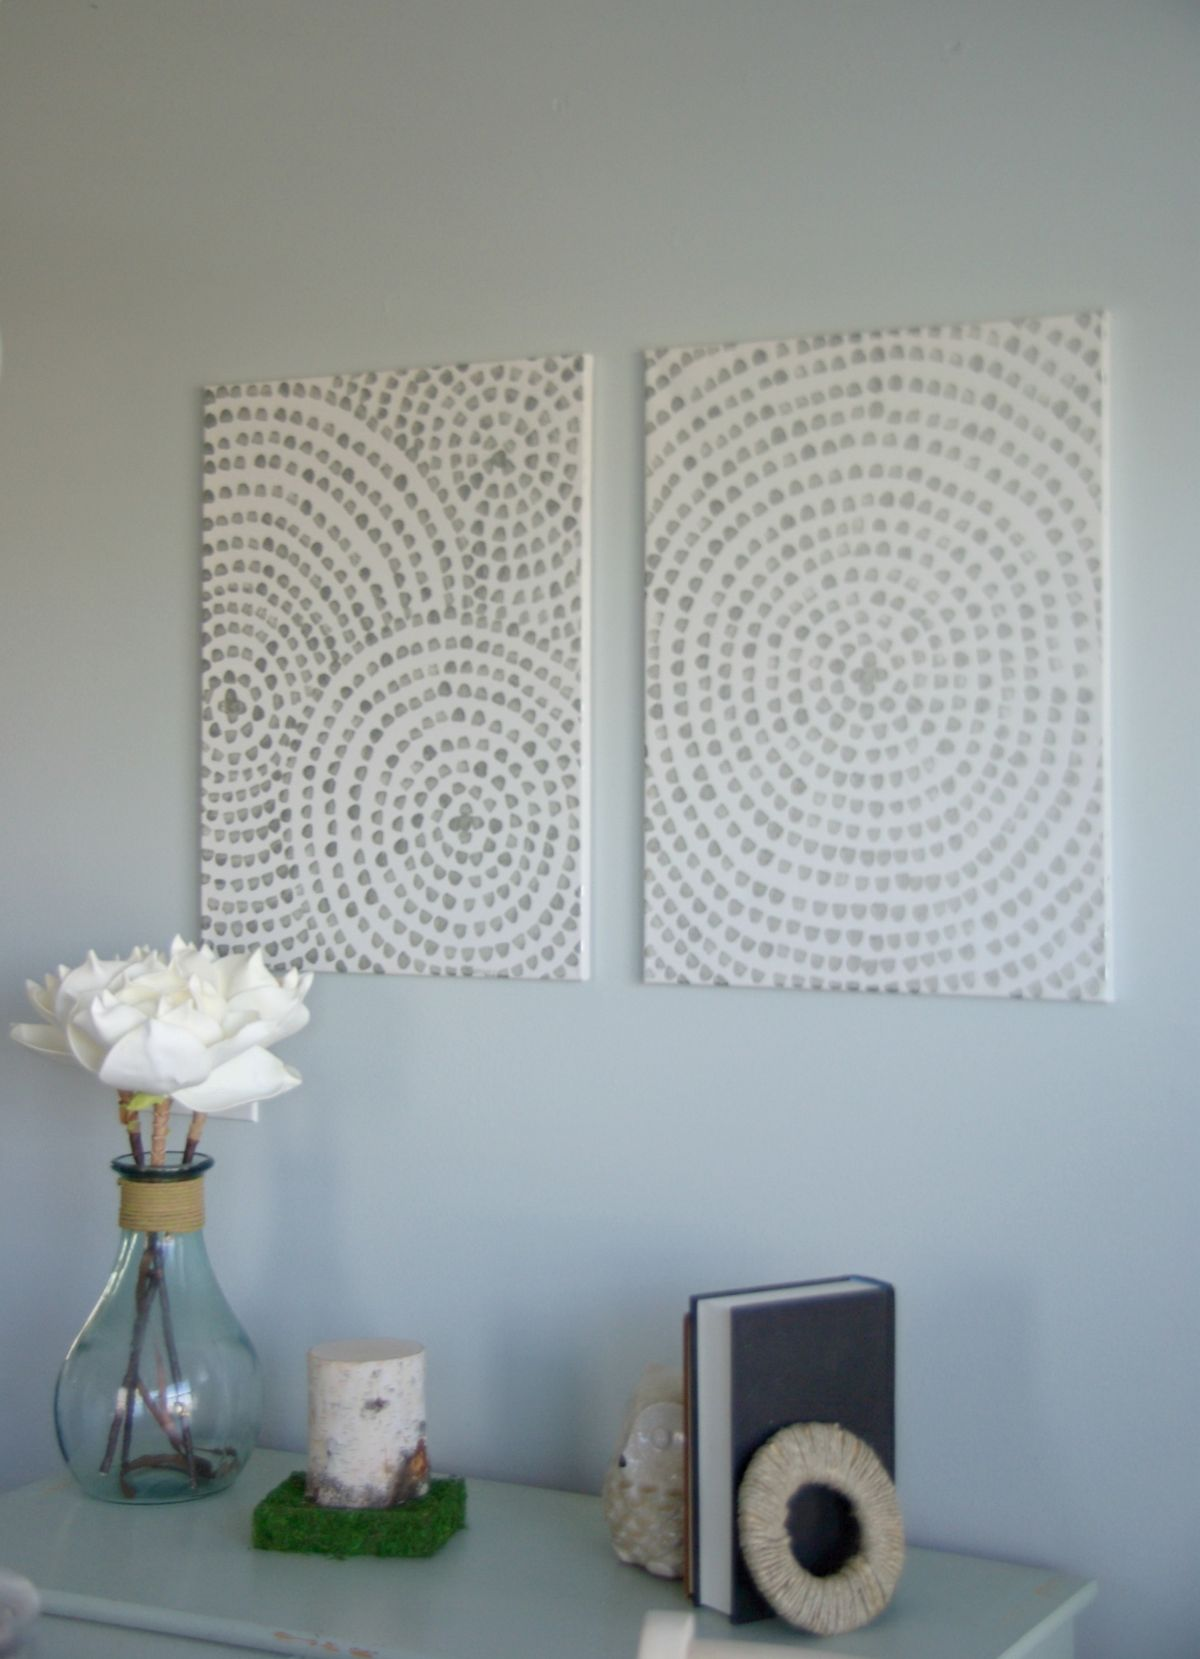 DIY Canvas Wall Art U2013 A Low Cost Way To Add Art To Your Home